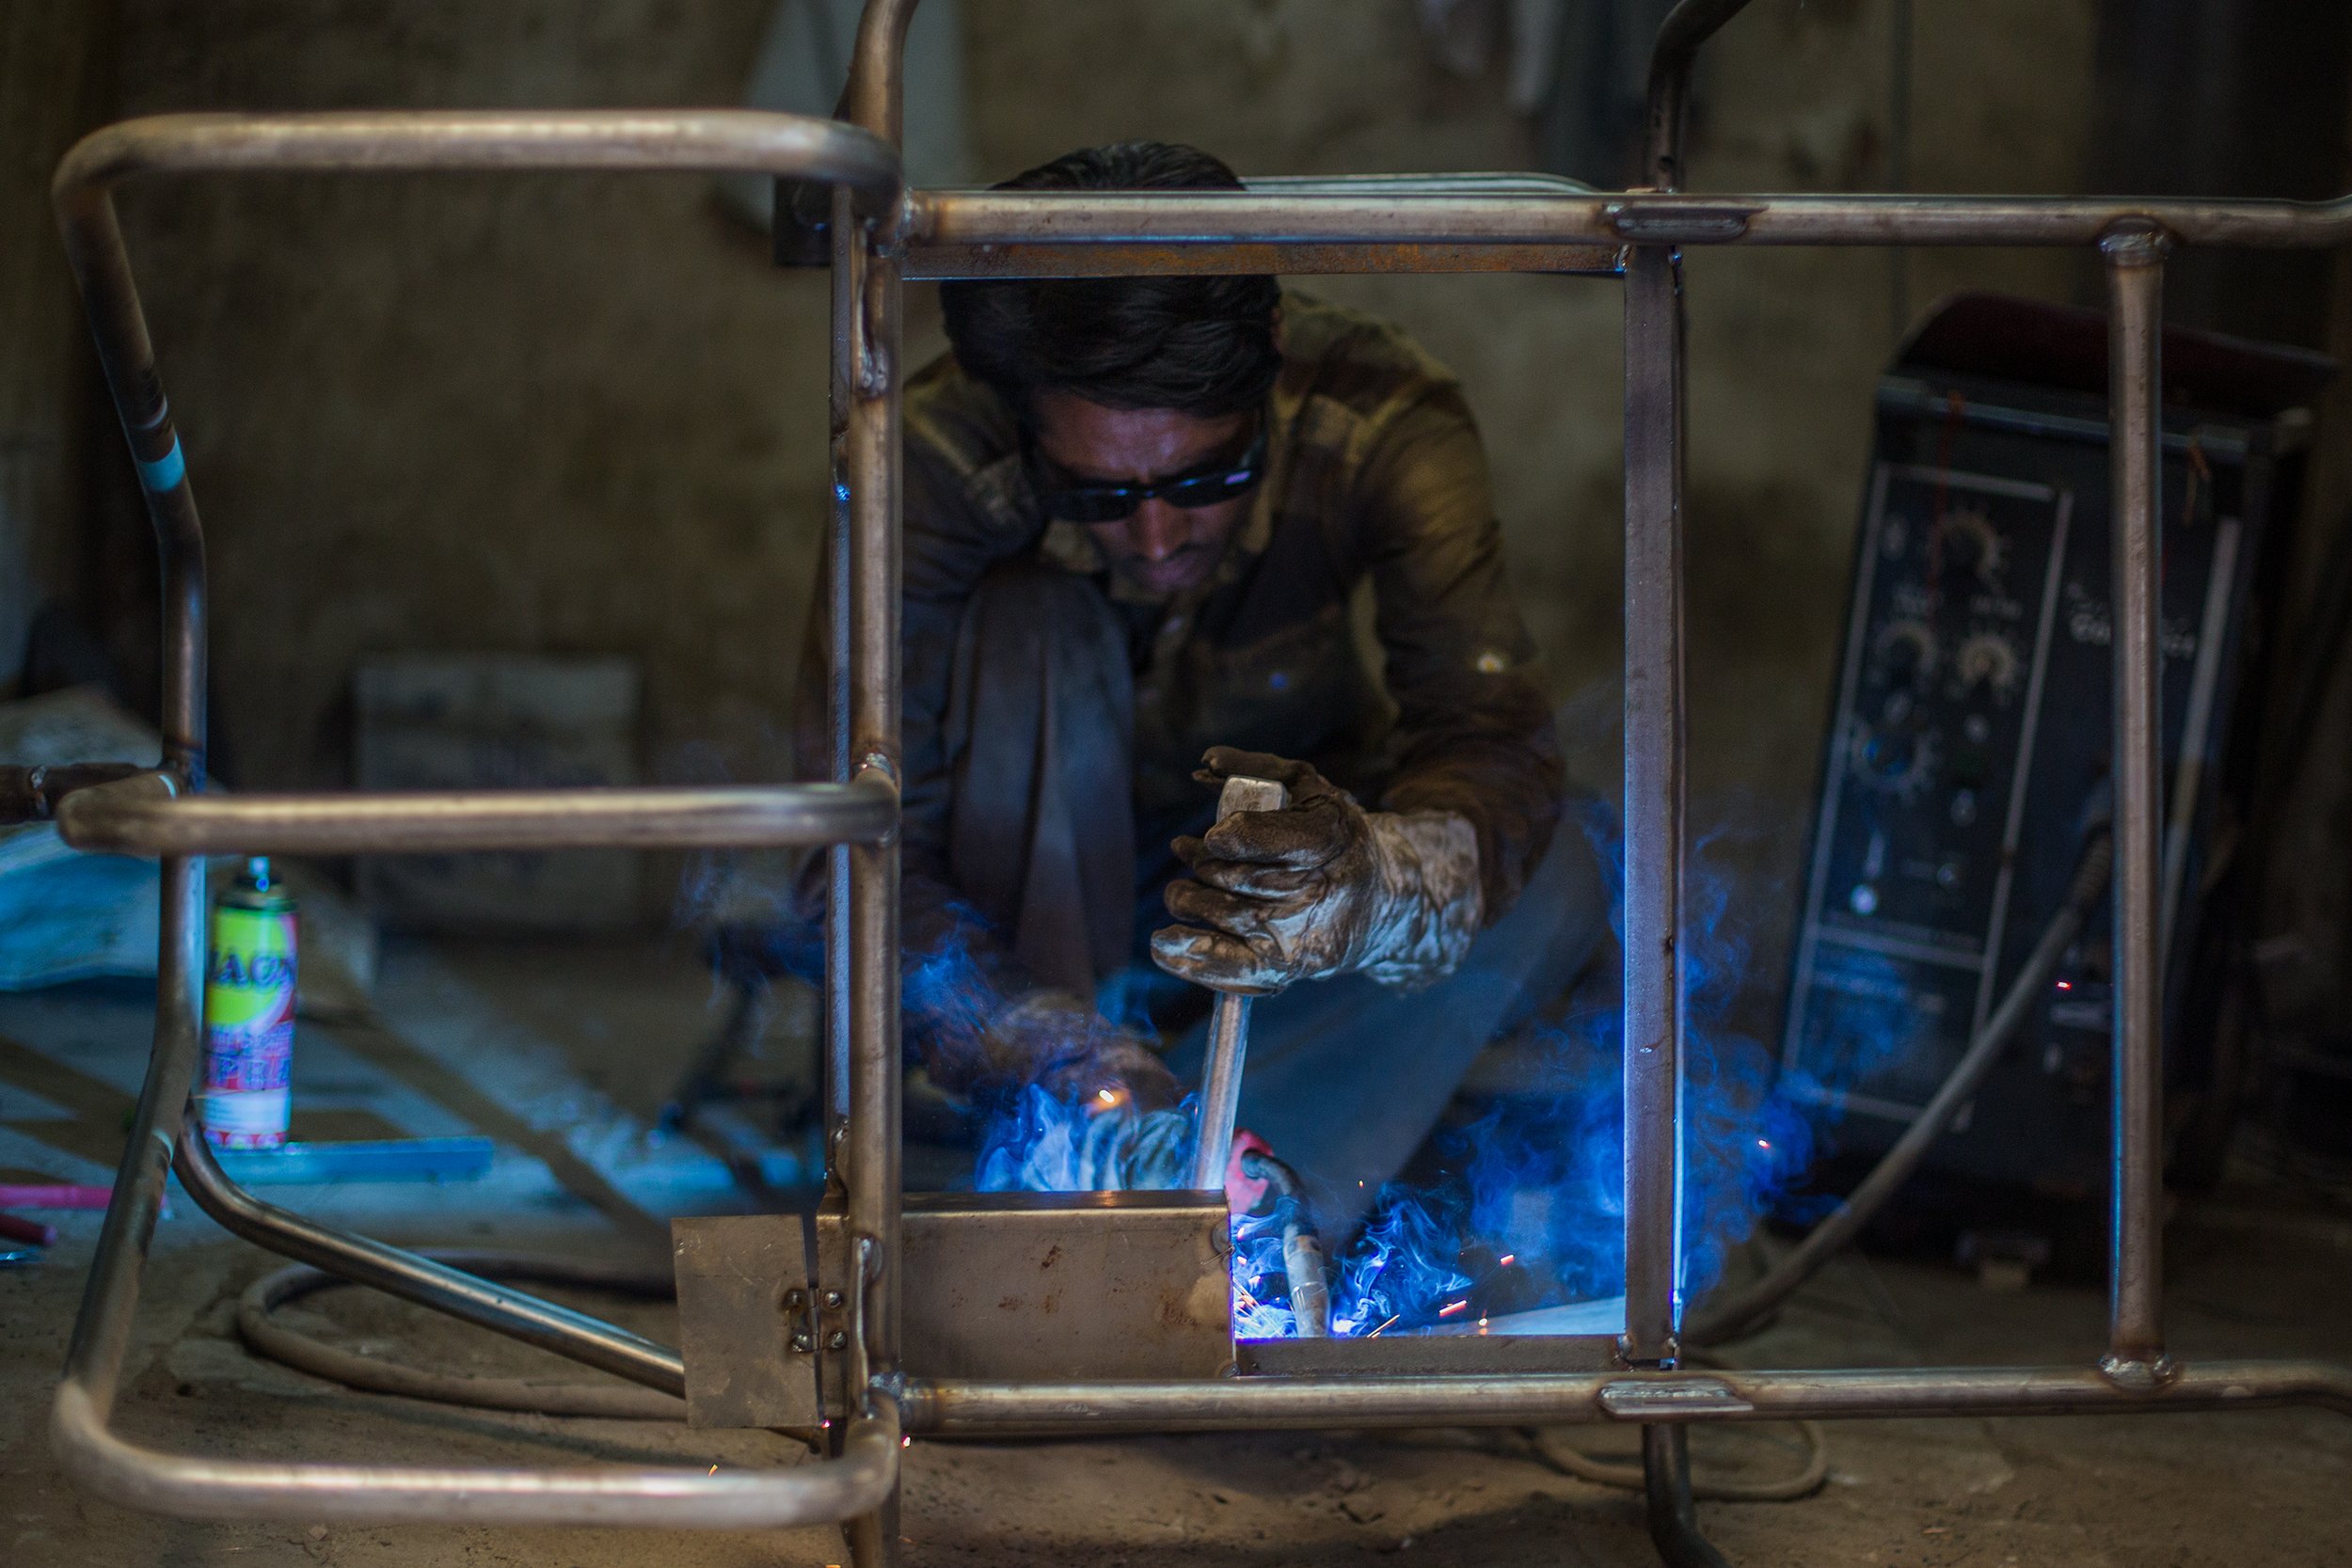 Welding a hand-pedaled tricycle frame for patients who have lost both their feet or mobility of their lower limbs. The tricycles are provided free of charge and enable patients to independently move around and increase their autonomy.